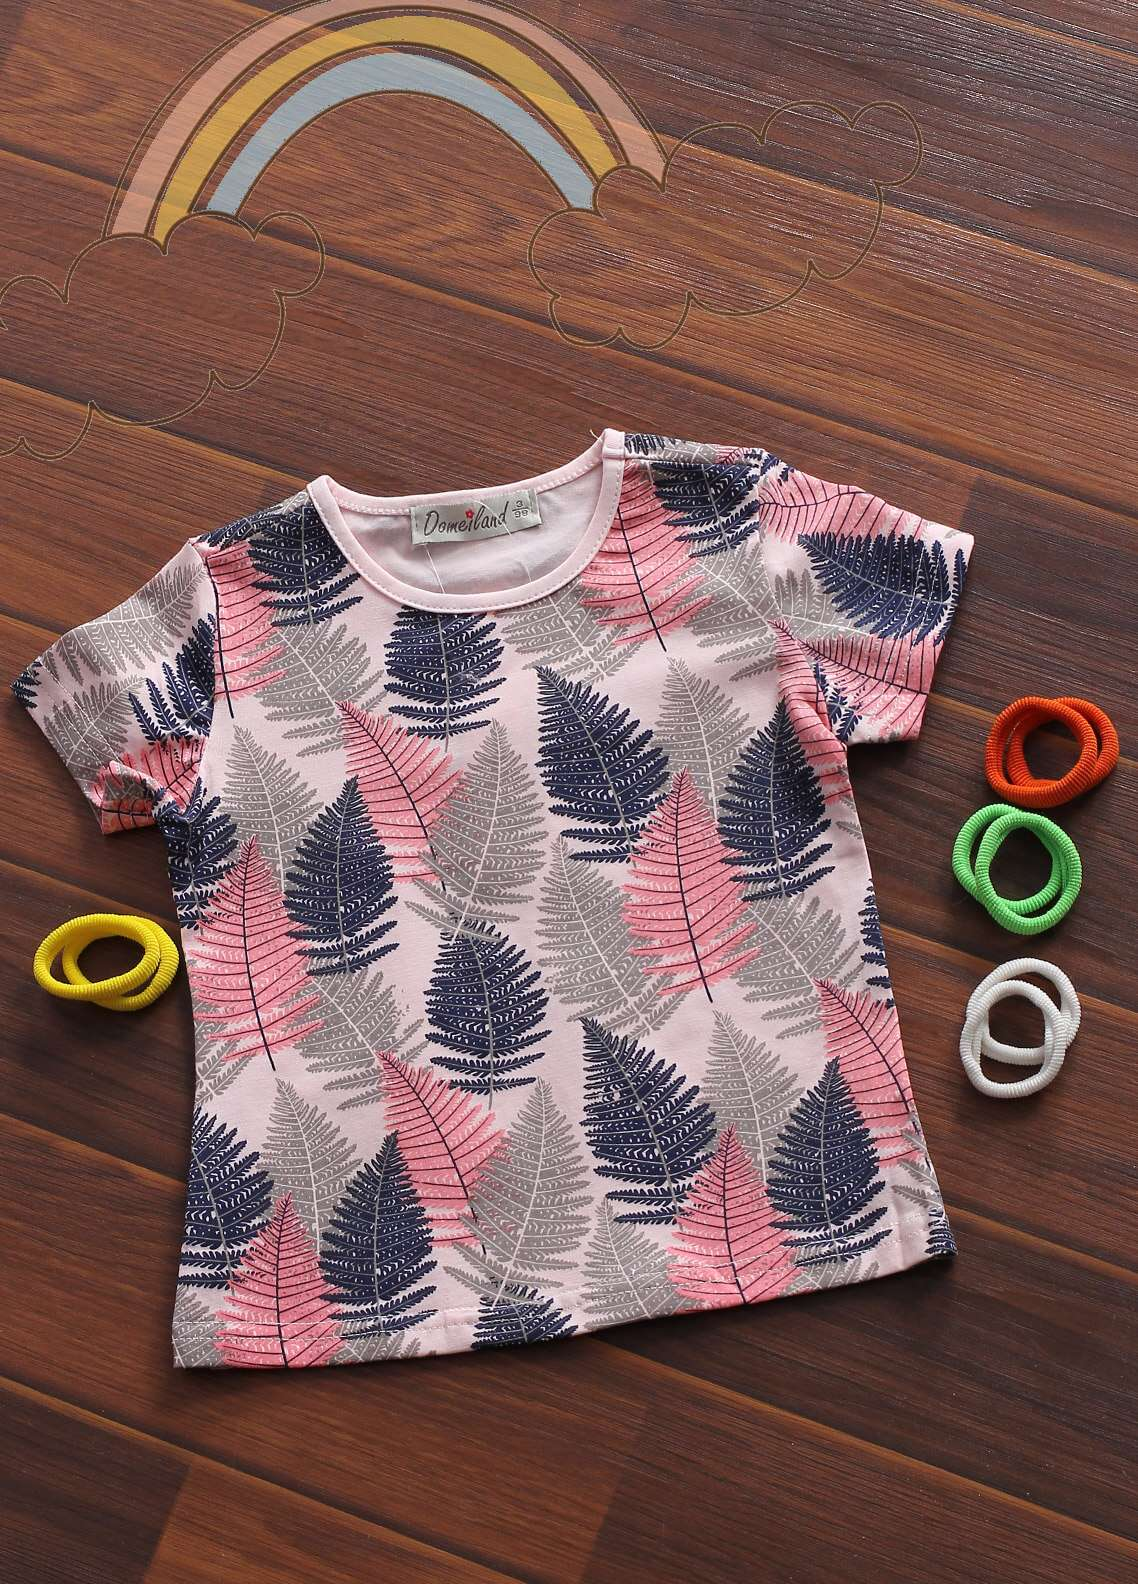 Sanaulla Exclusive Range Cotton Fancy Girls Tees -  802550 Pink